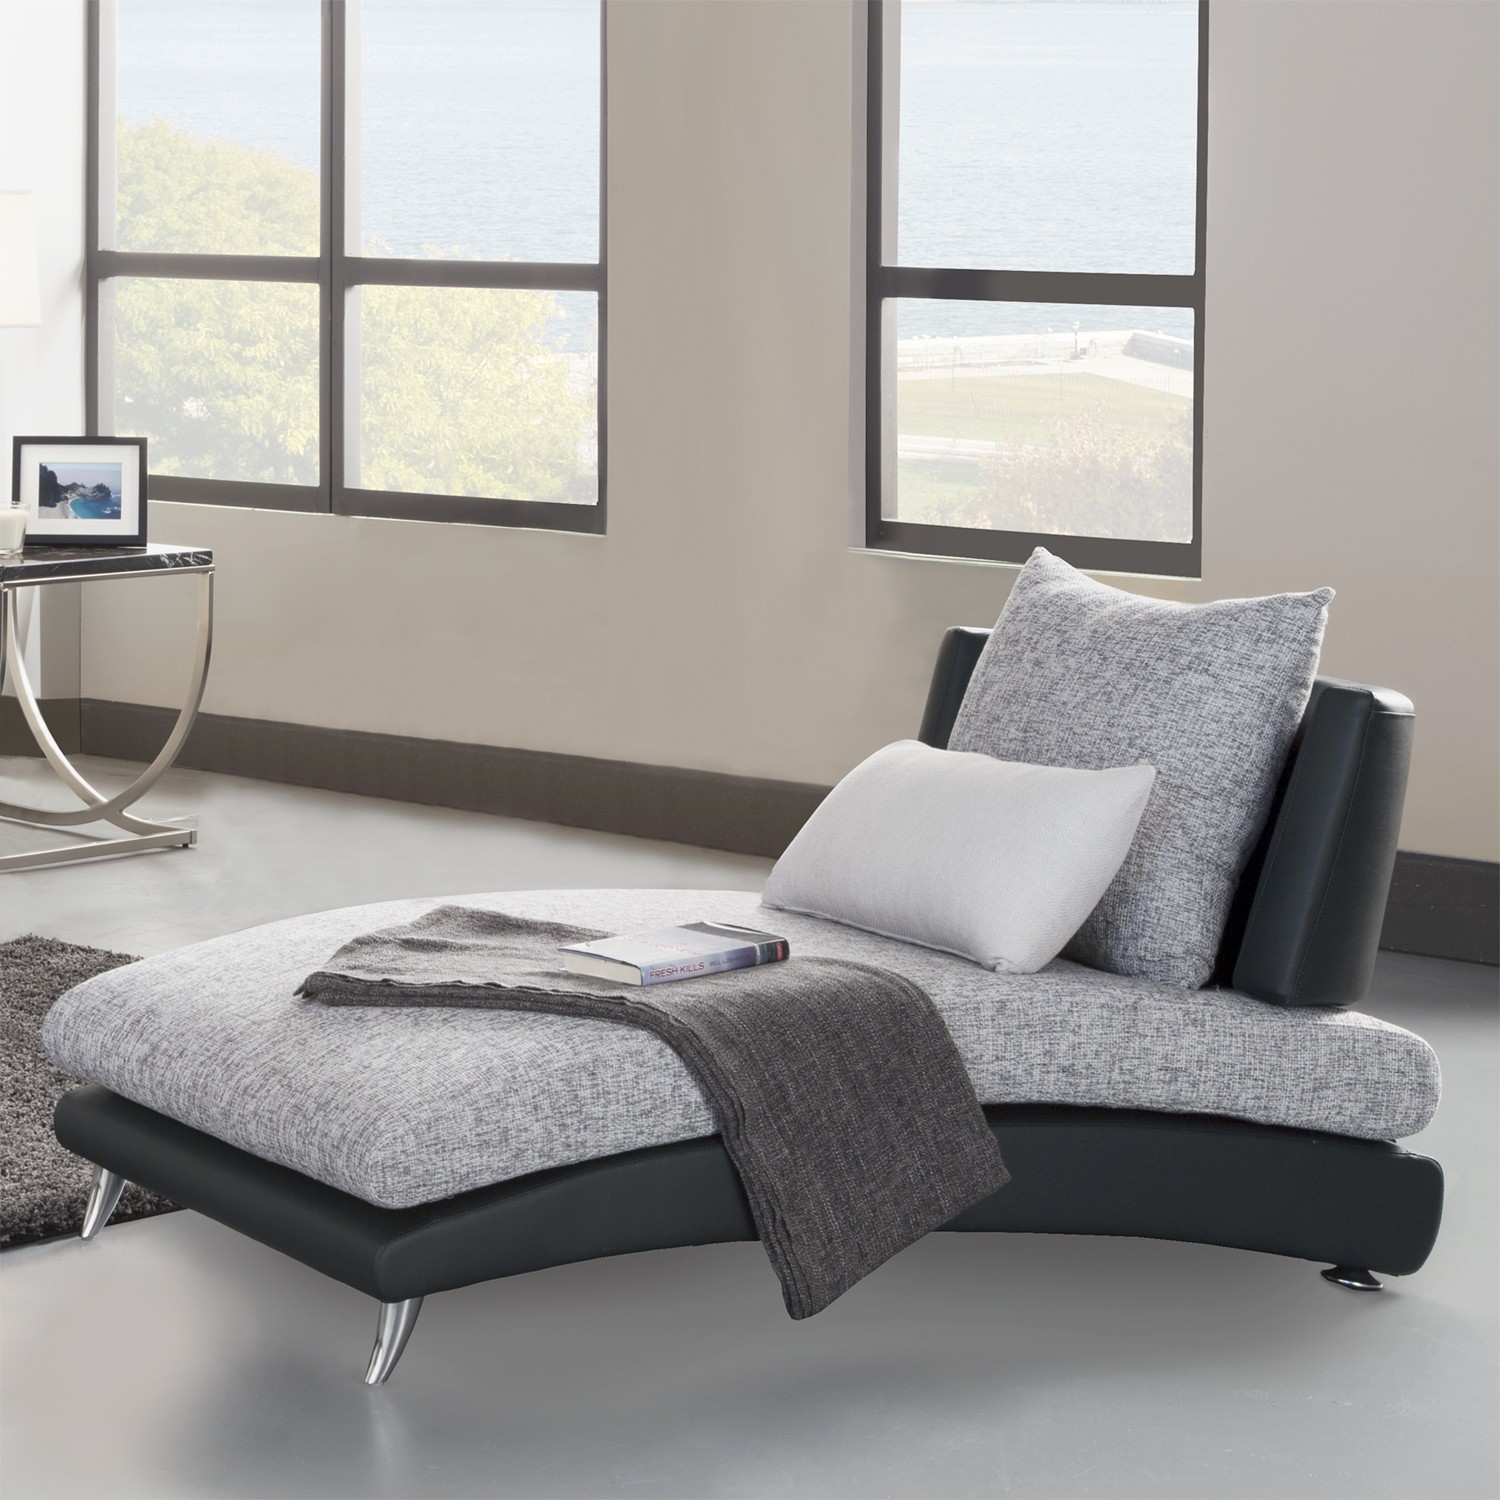 Endearing Comfortable Chaise With Additional Modern Bedroom Chair Fabulous Lounge Sofa Chair Most Fortable Of Comfortable Chaise